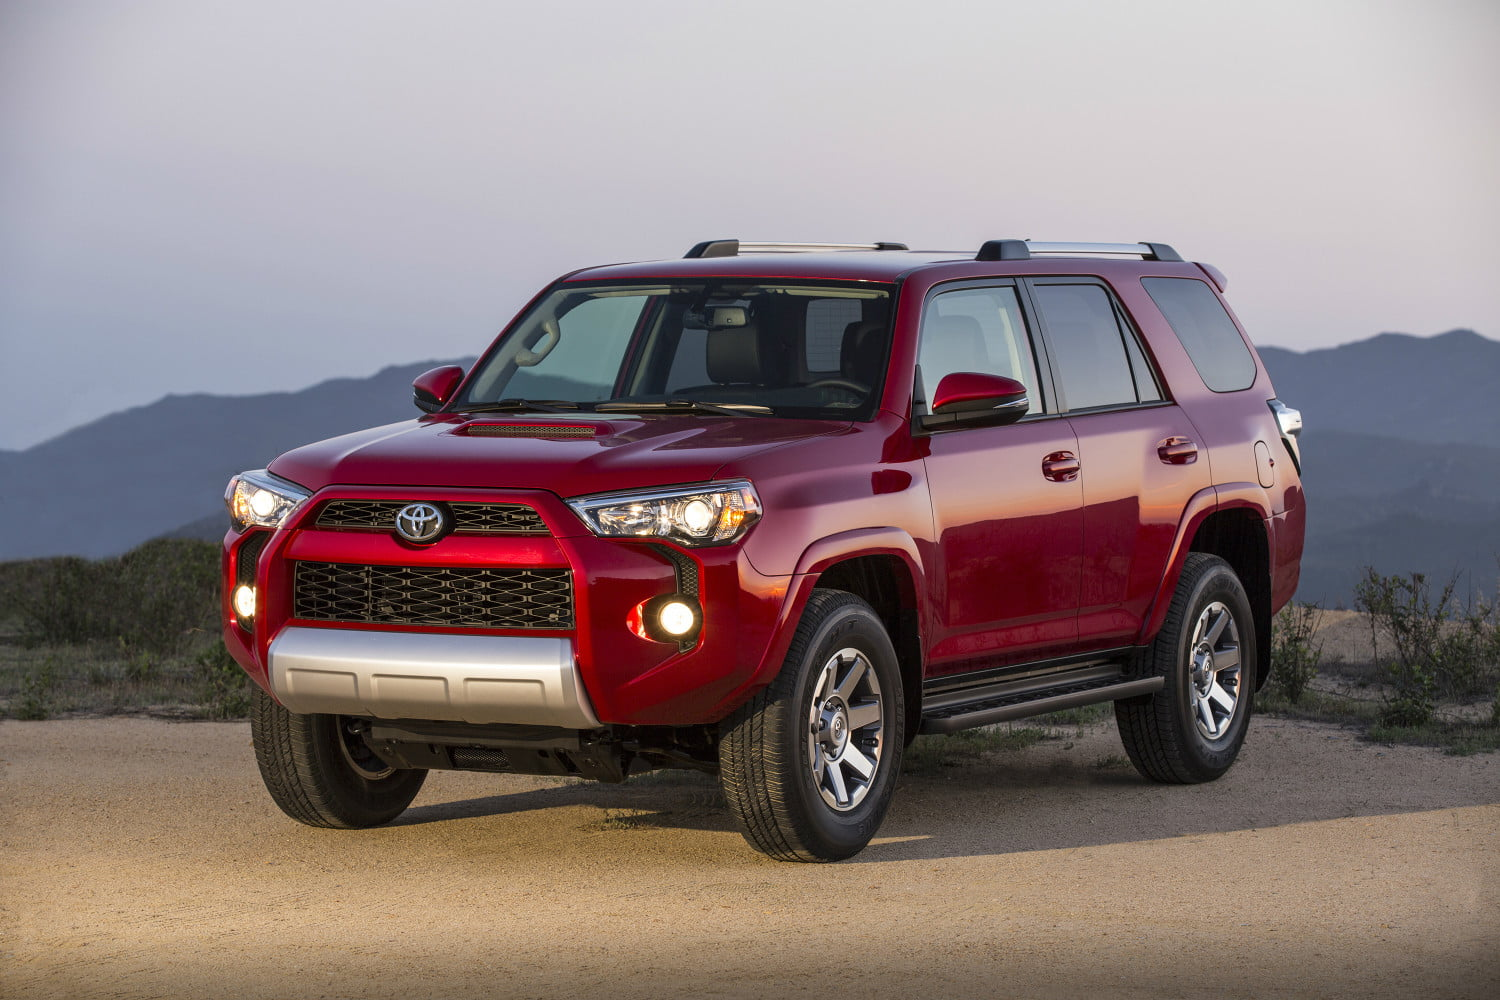 2018 toyota 4runner specs release date price performance 11